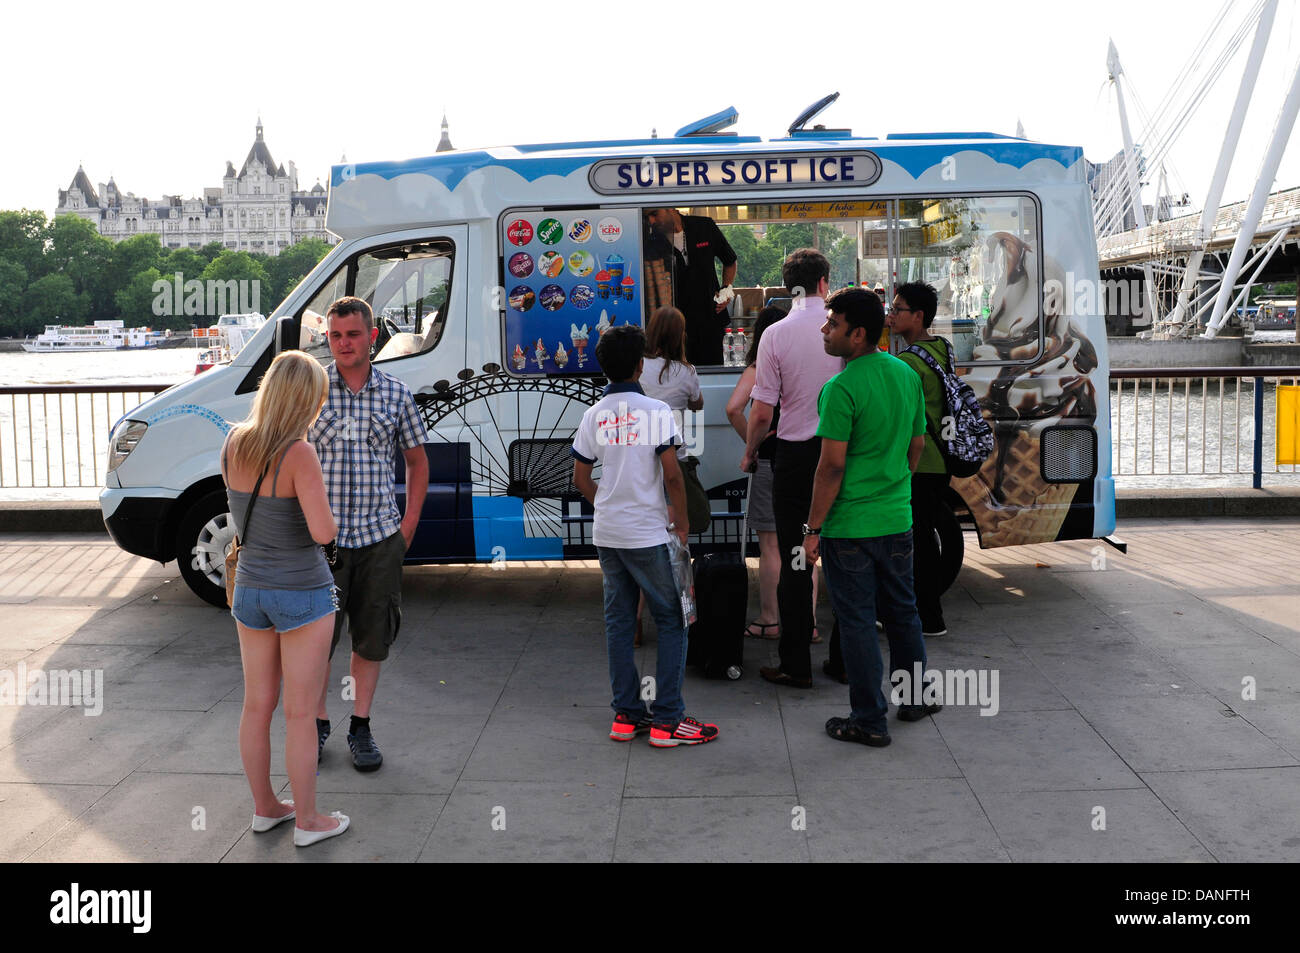 People buying ice cream from a van, South Bank, London, UK - Stock Image